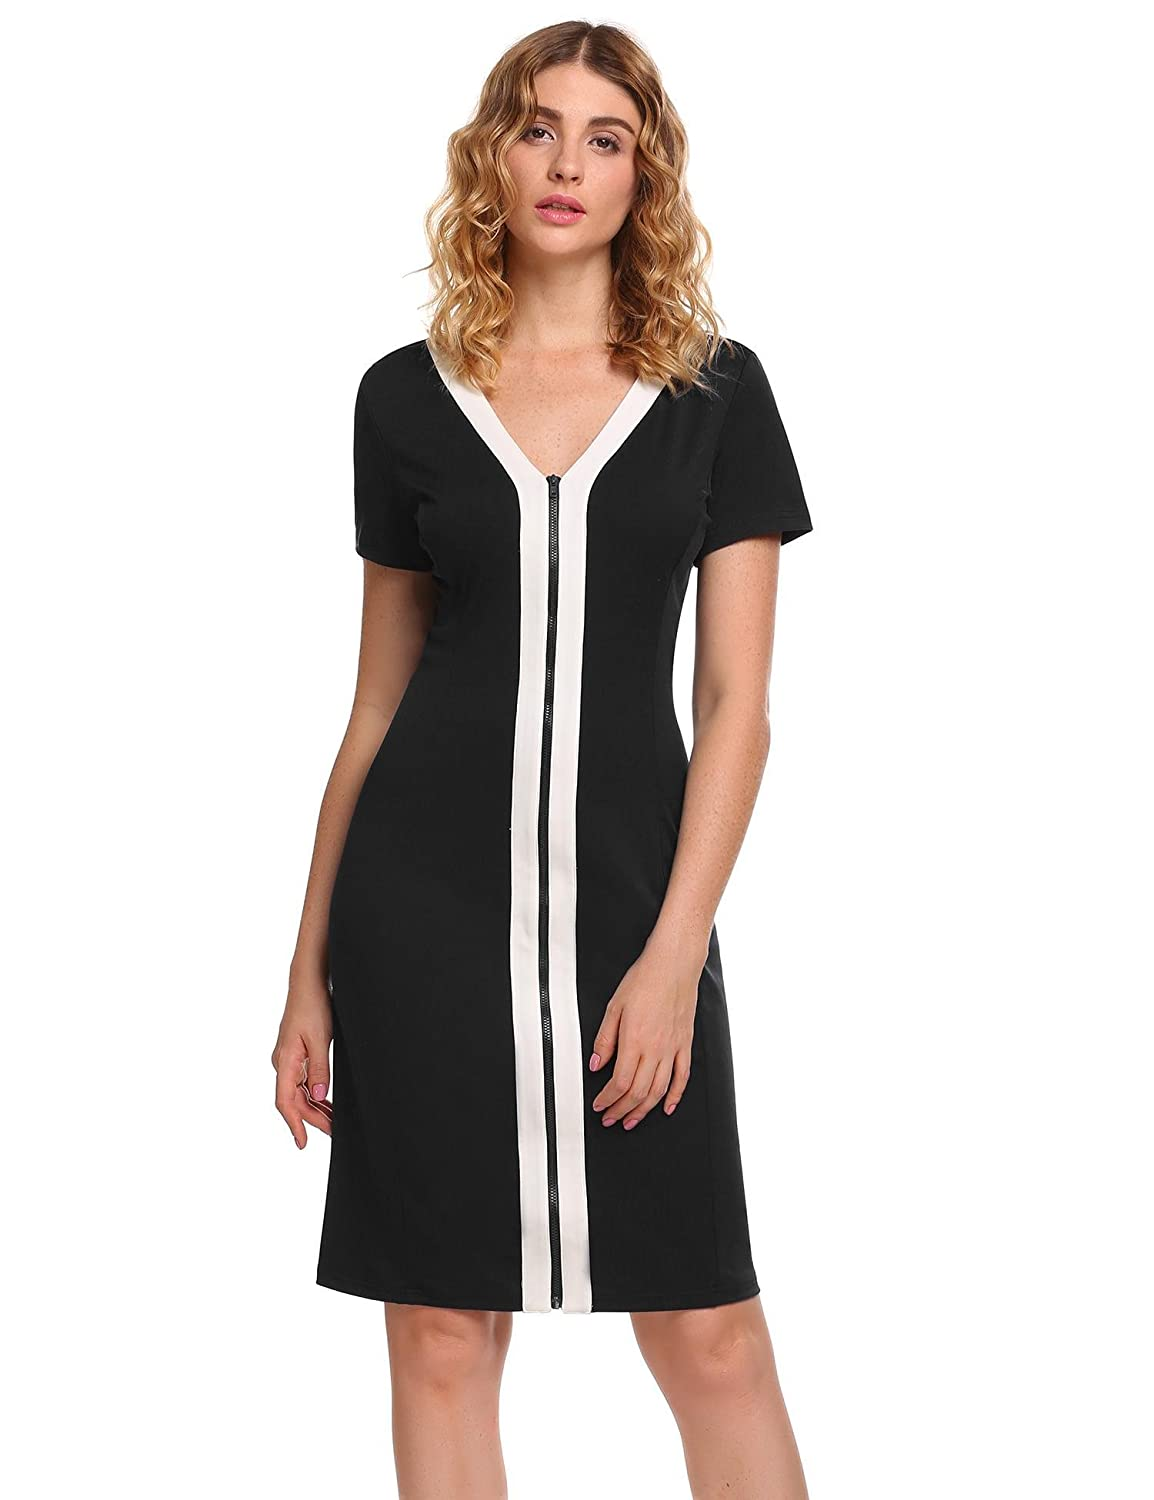 698682906c5 This Pencil Dress Material: High Quality,soft,Thick,comfortable and  stretchy. Design: Stripe Pattern,O-Neck, 3/4 sleeve,Navy Style  Design,classy and basic ...